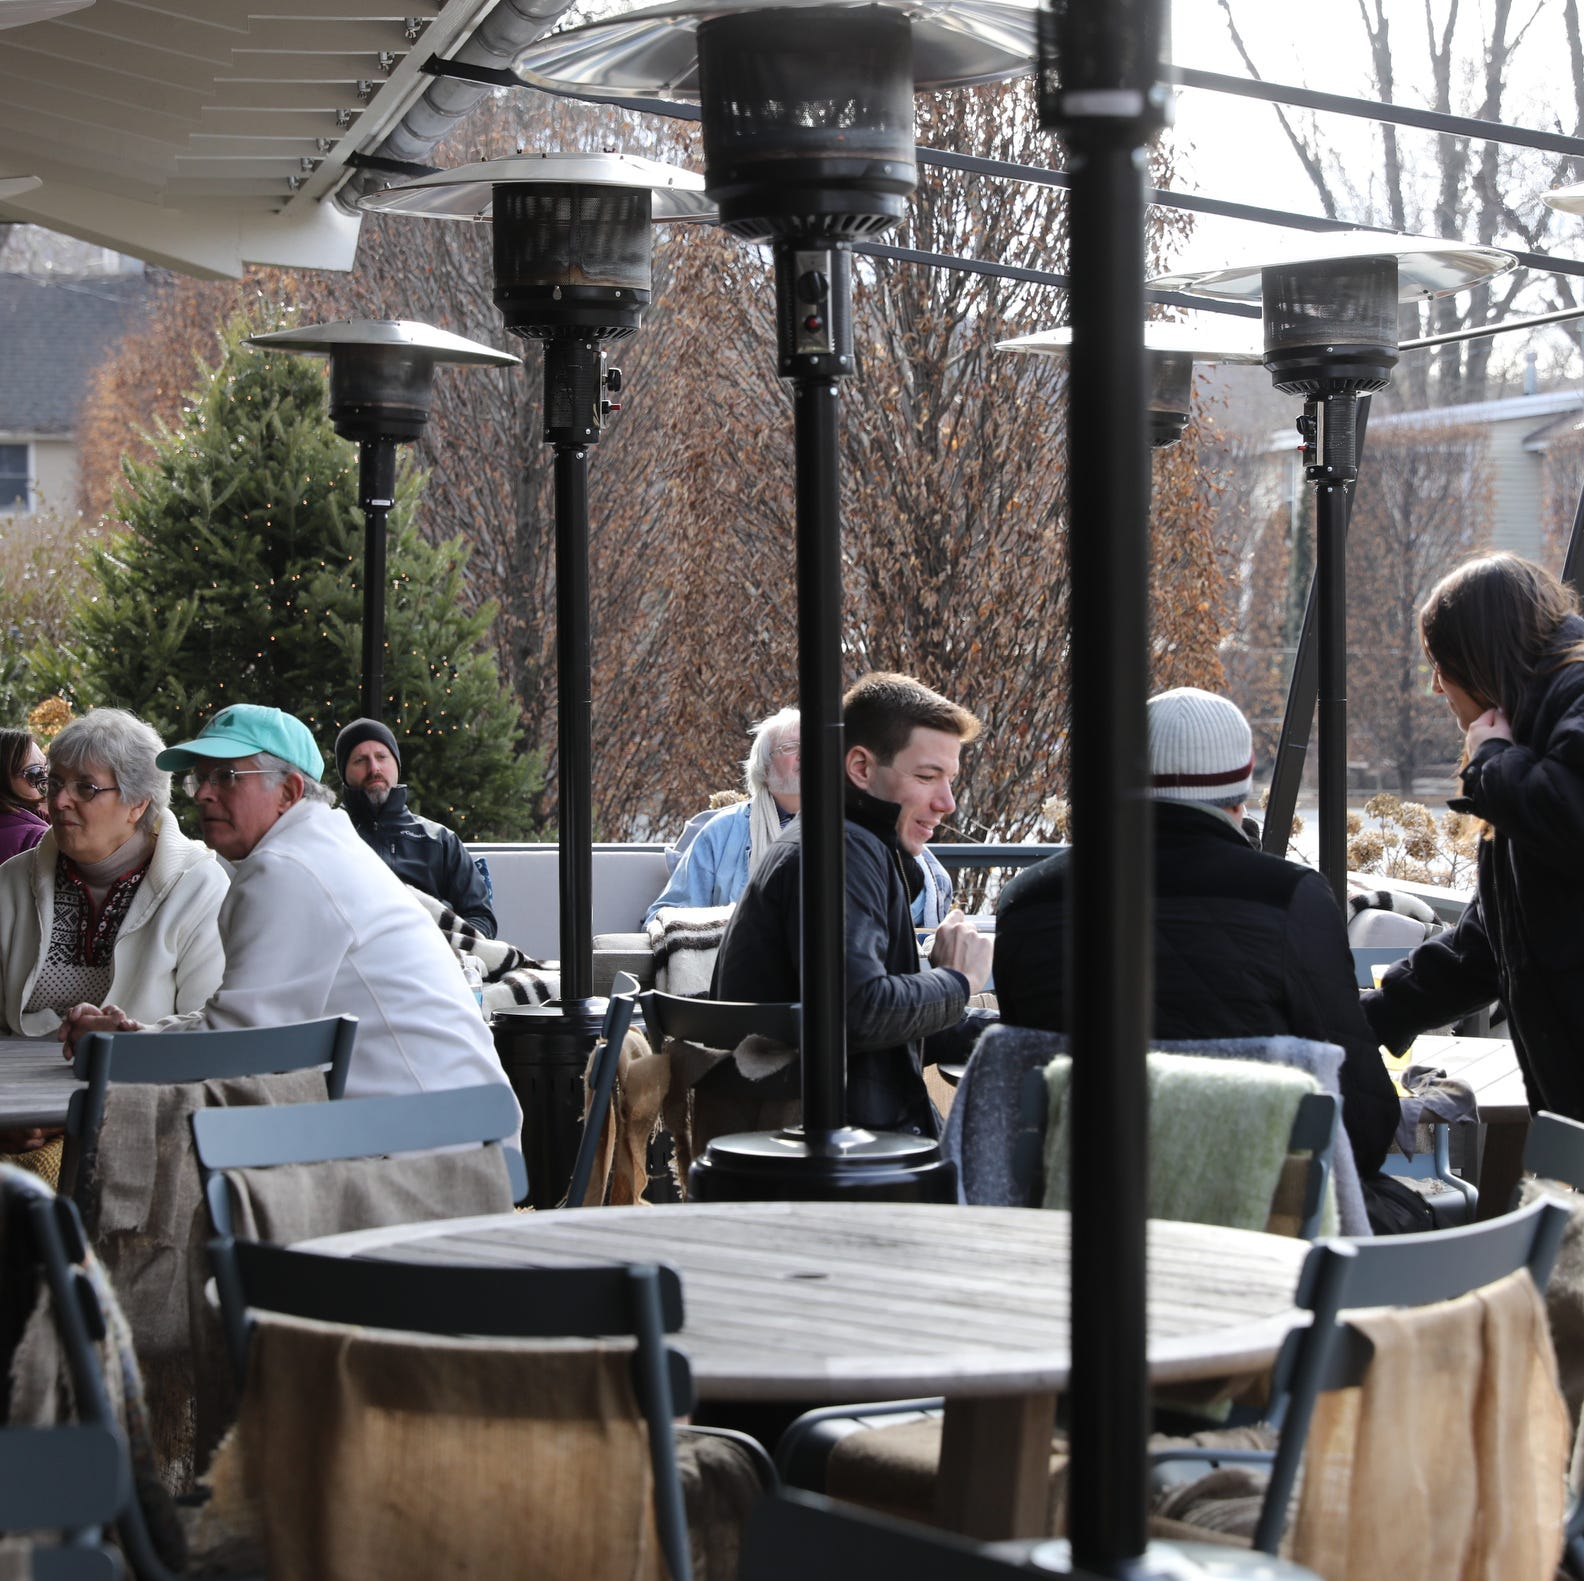 No skis required at Valley Rock Inn & Mountain Club's après-ski lunches